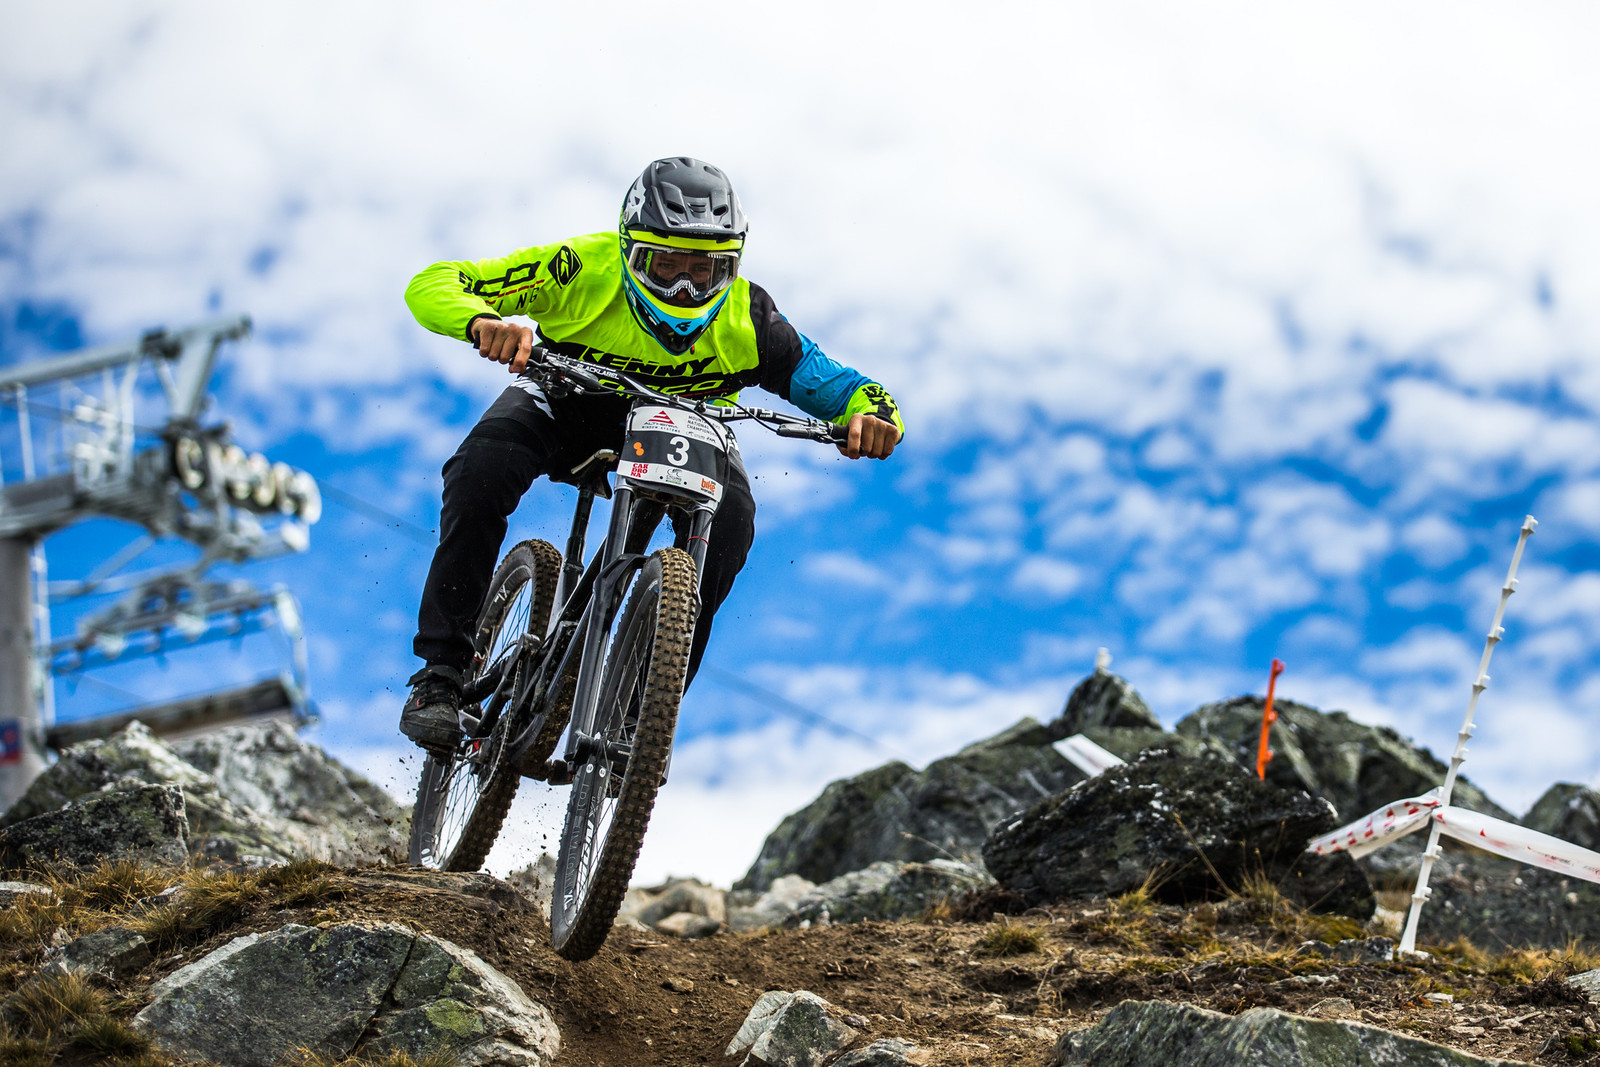 Sam Blenkinsop Running All Kinds of New Goodies - Blenki, Brook & More - 2018 NZ National Champs Day 1 - Mountain Biking Pictures - Vital MTB